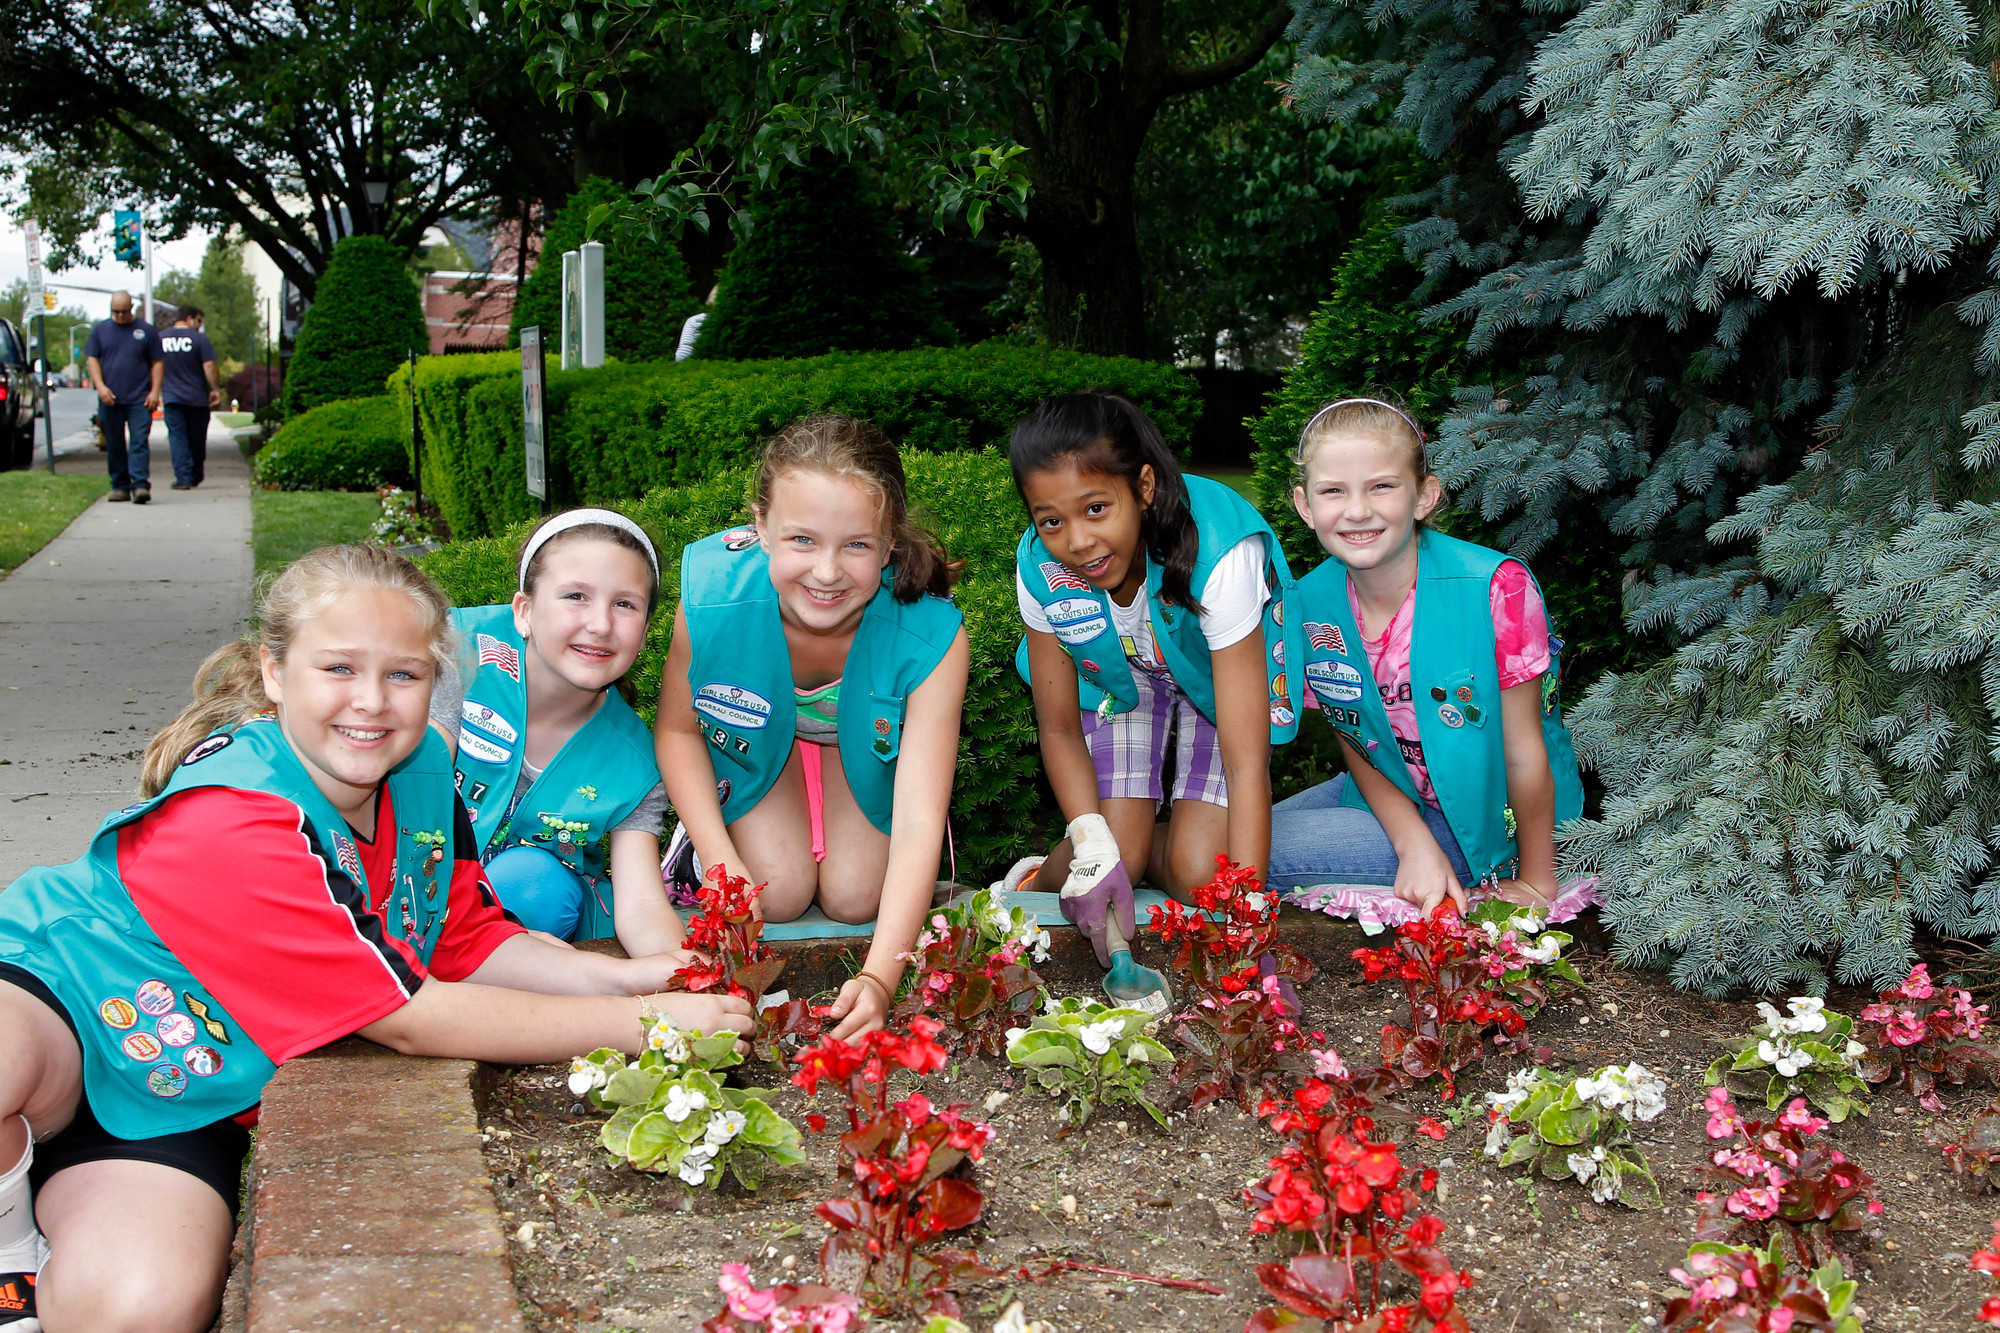 From left are 9-year-old Catrina Casella from Troop 837;  9-year-old Jamison Novello from Troop 837;  10-year-old Maggie Kutner from Troop 837; 10-year-old Kayla Chin from Troop 840 and 9-year-old Reilly Minnigan from Troop 837 with some of the plantings that were done during the beautification project Saturday.